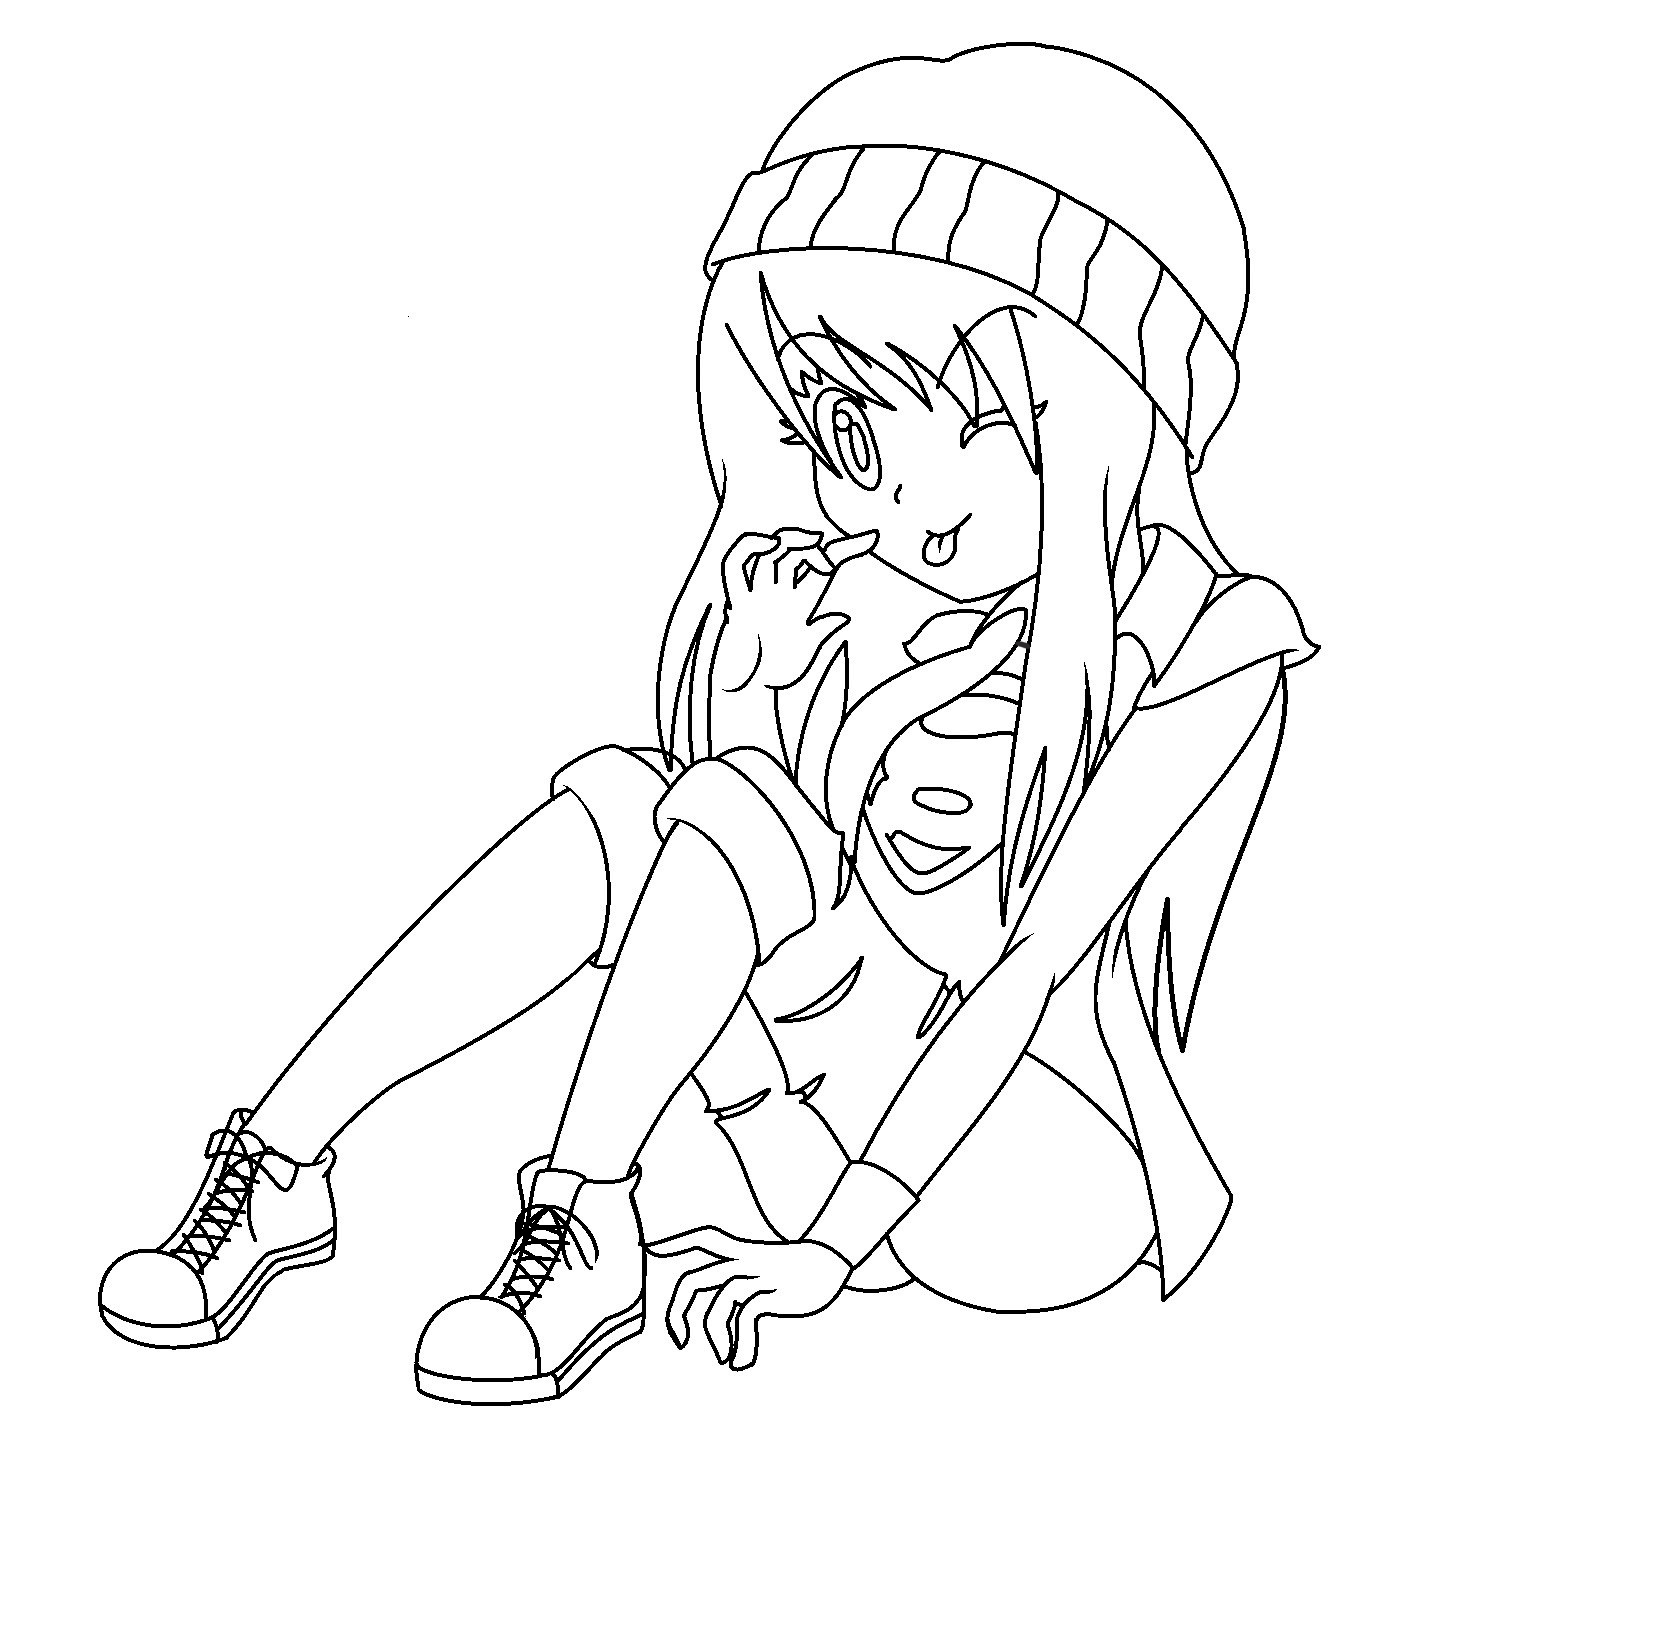 Line Drawing Of Girl : Cool girl lineart by patriciamuacmuac on deviantart